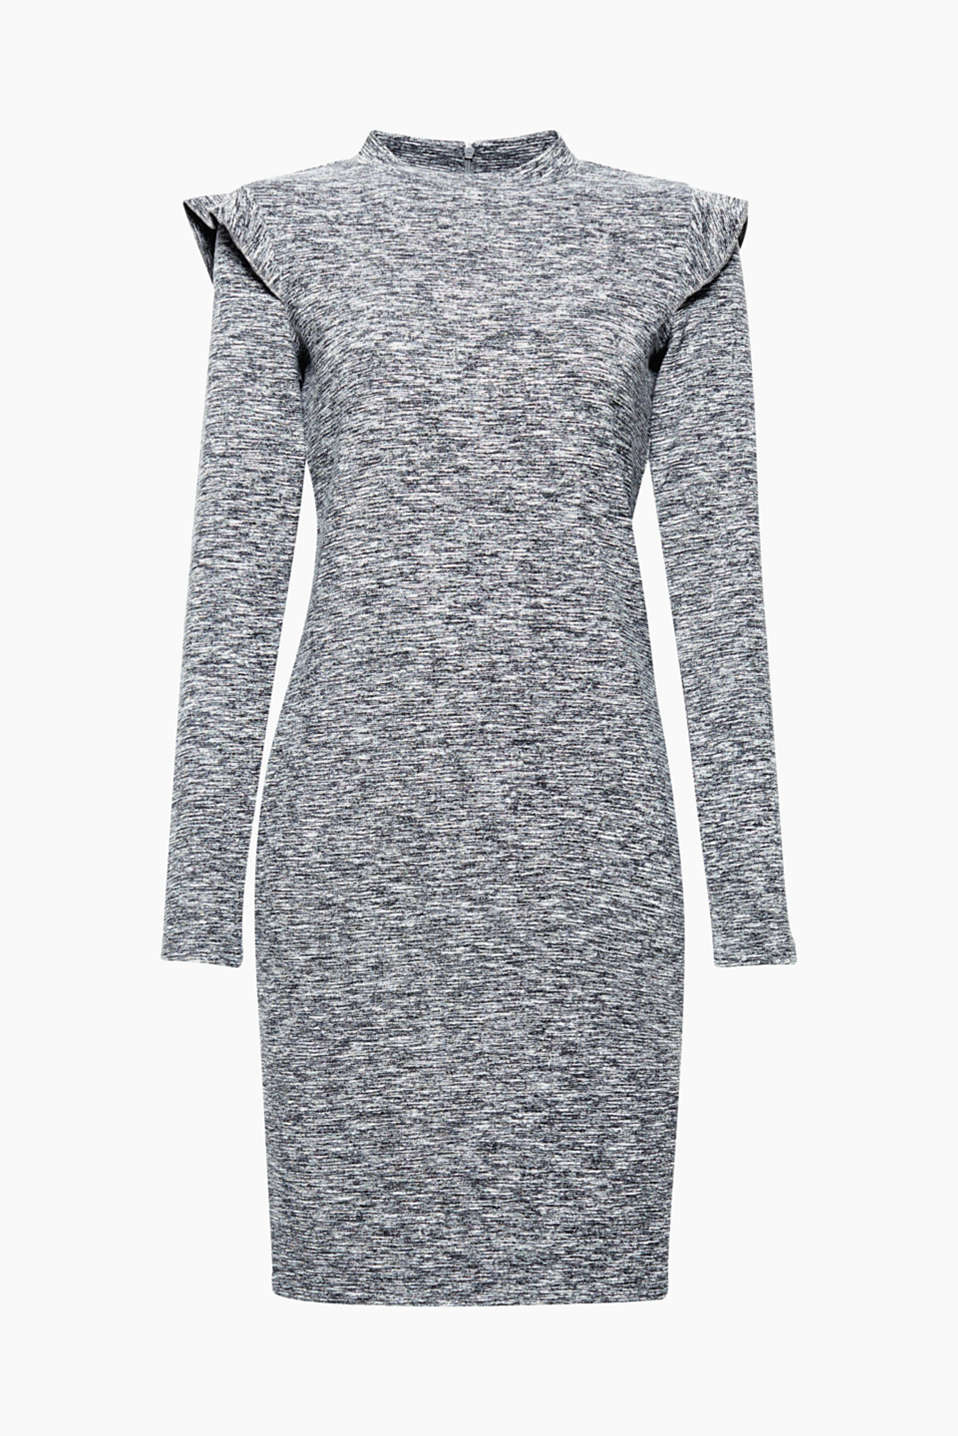 Sporty melange finish, pretty styling: frills on the shoulders give this stretch dress a romantic twist!